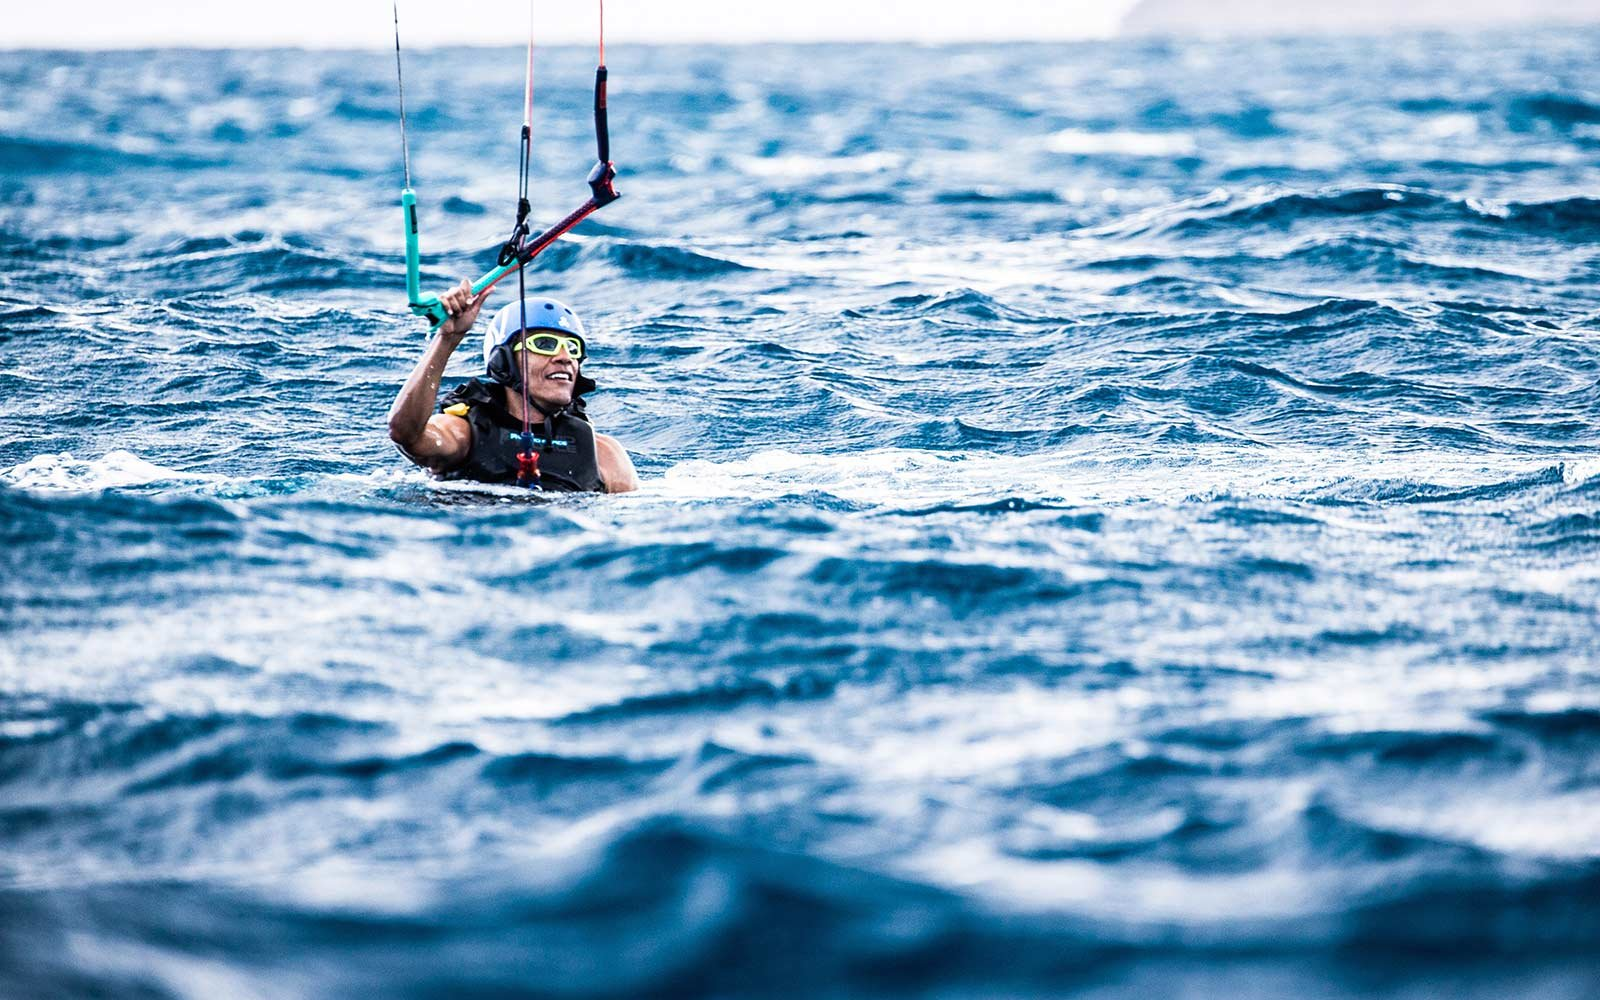 Obama kitesurfing vacation reactions